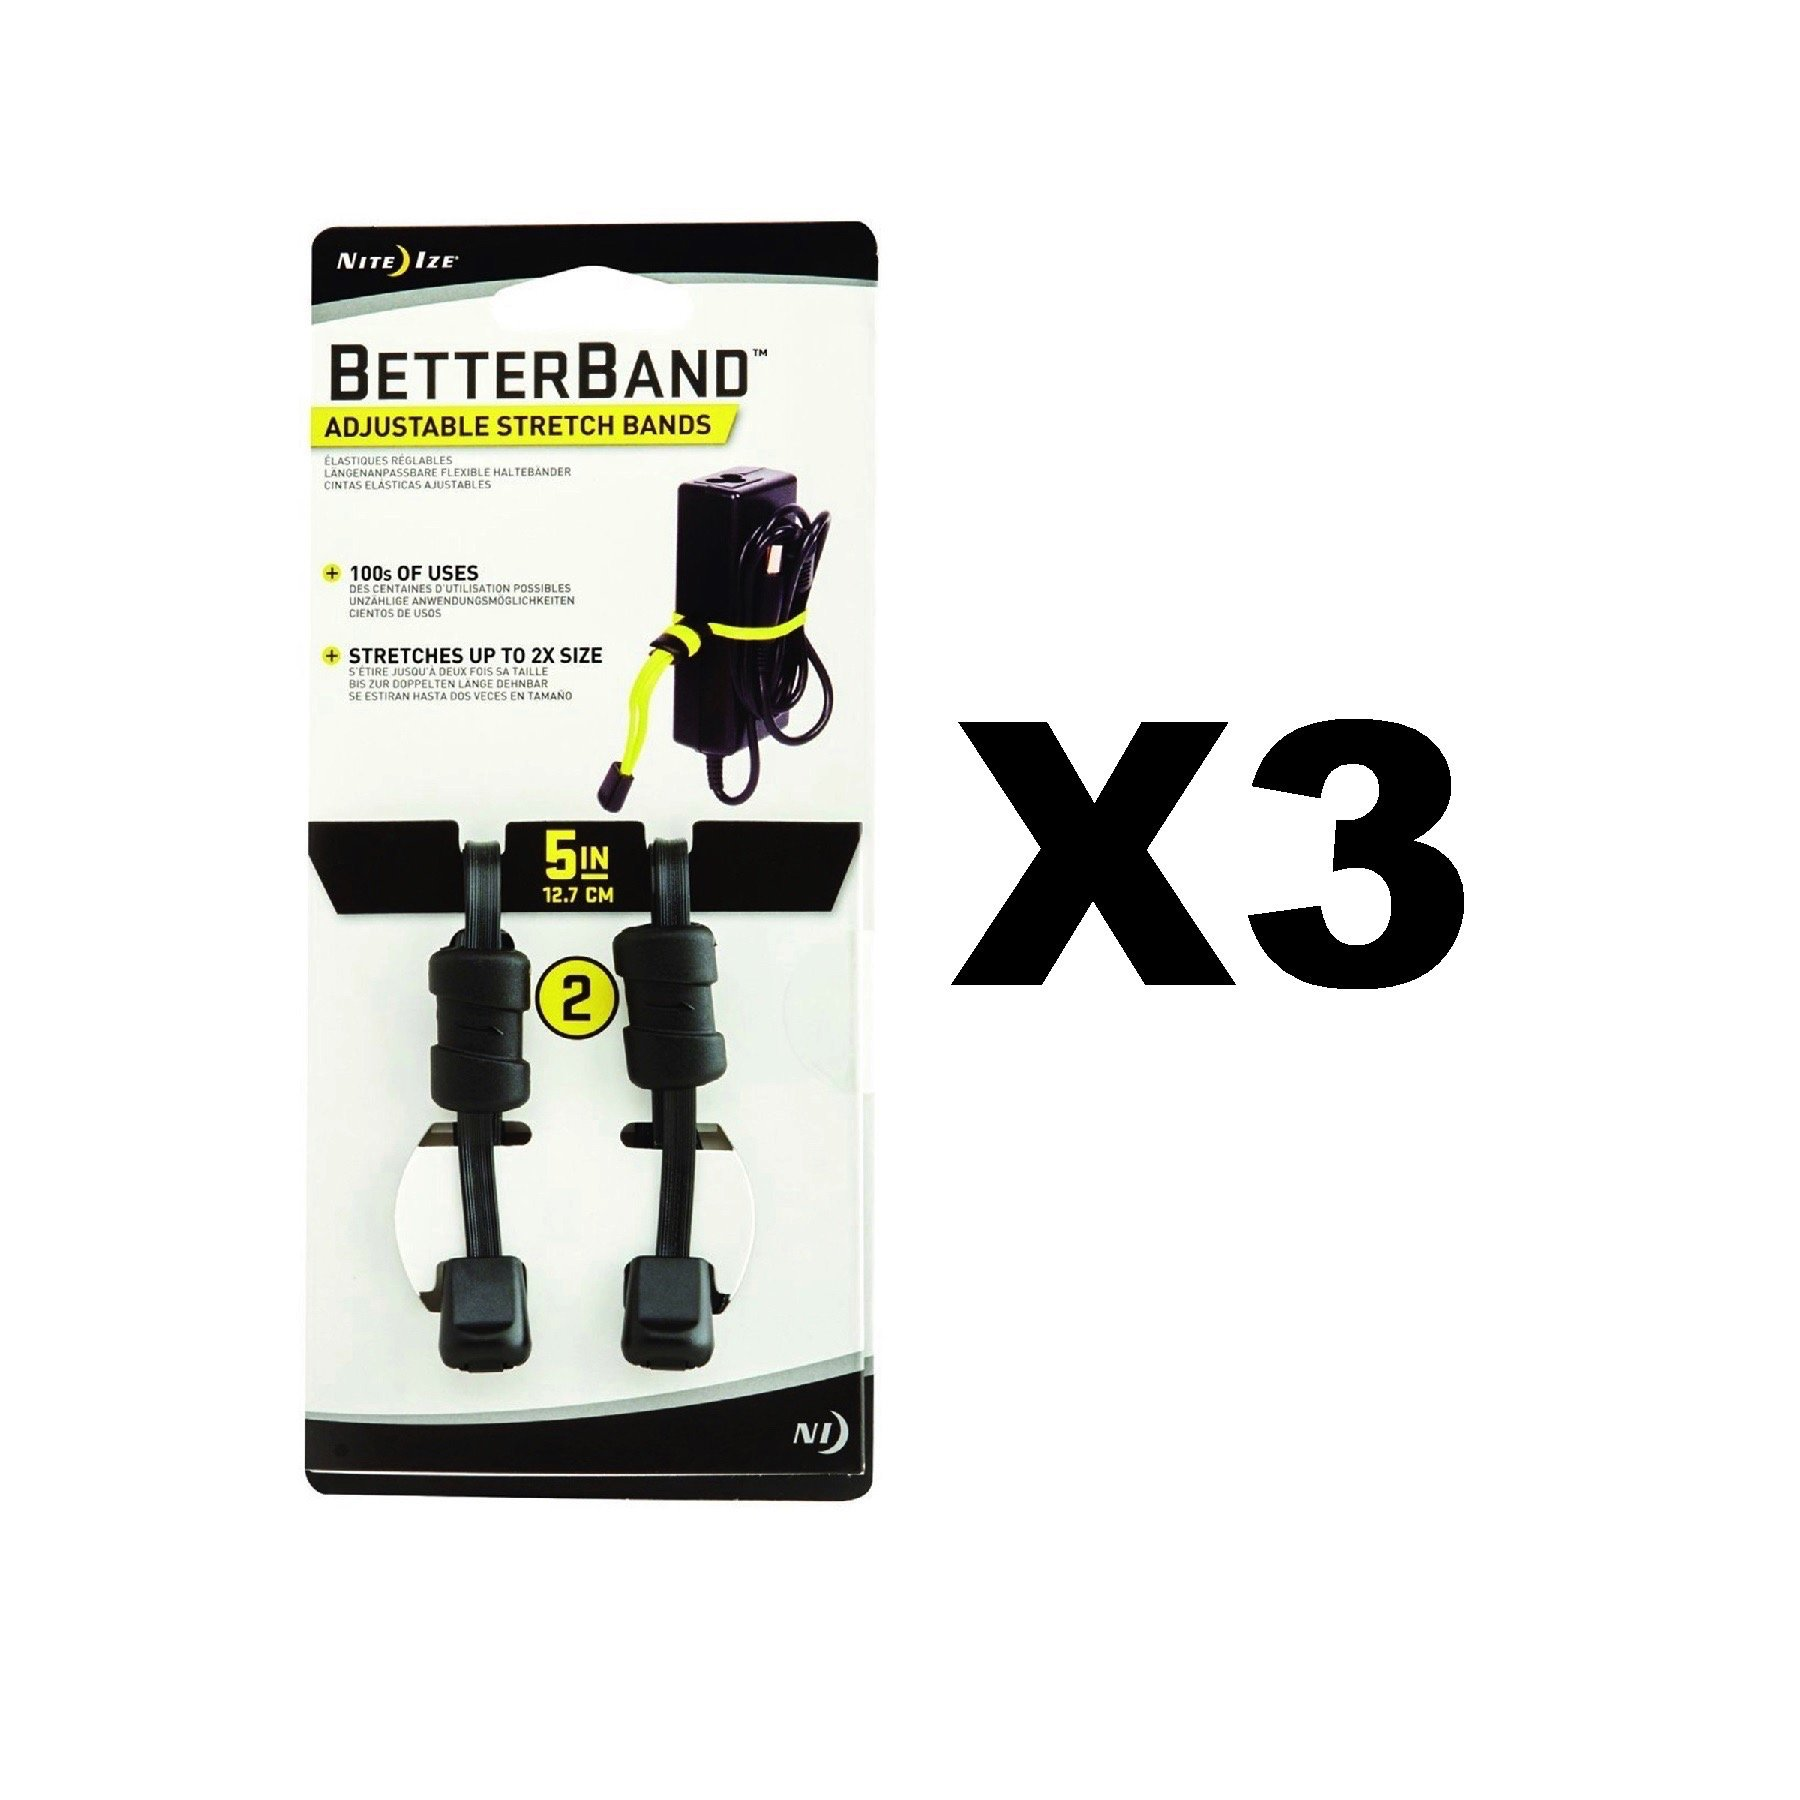 Nite Ize BetterBand 5'' Black Adjustable Stretch Bands Durable Laces(3-Pack of 2)